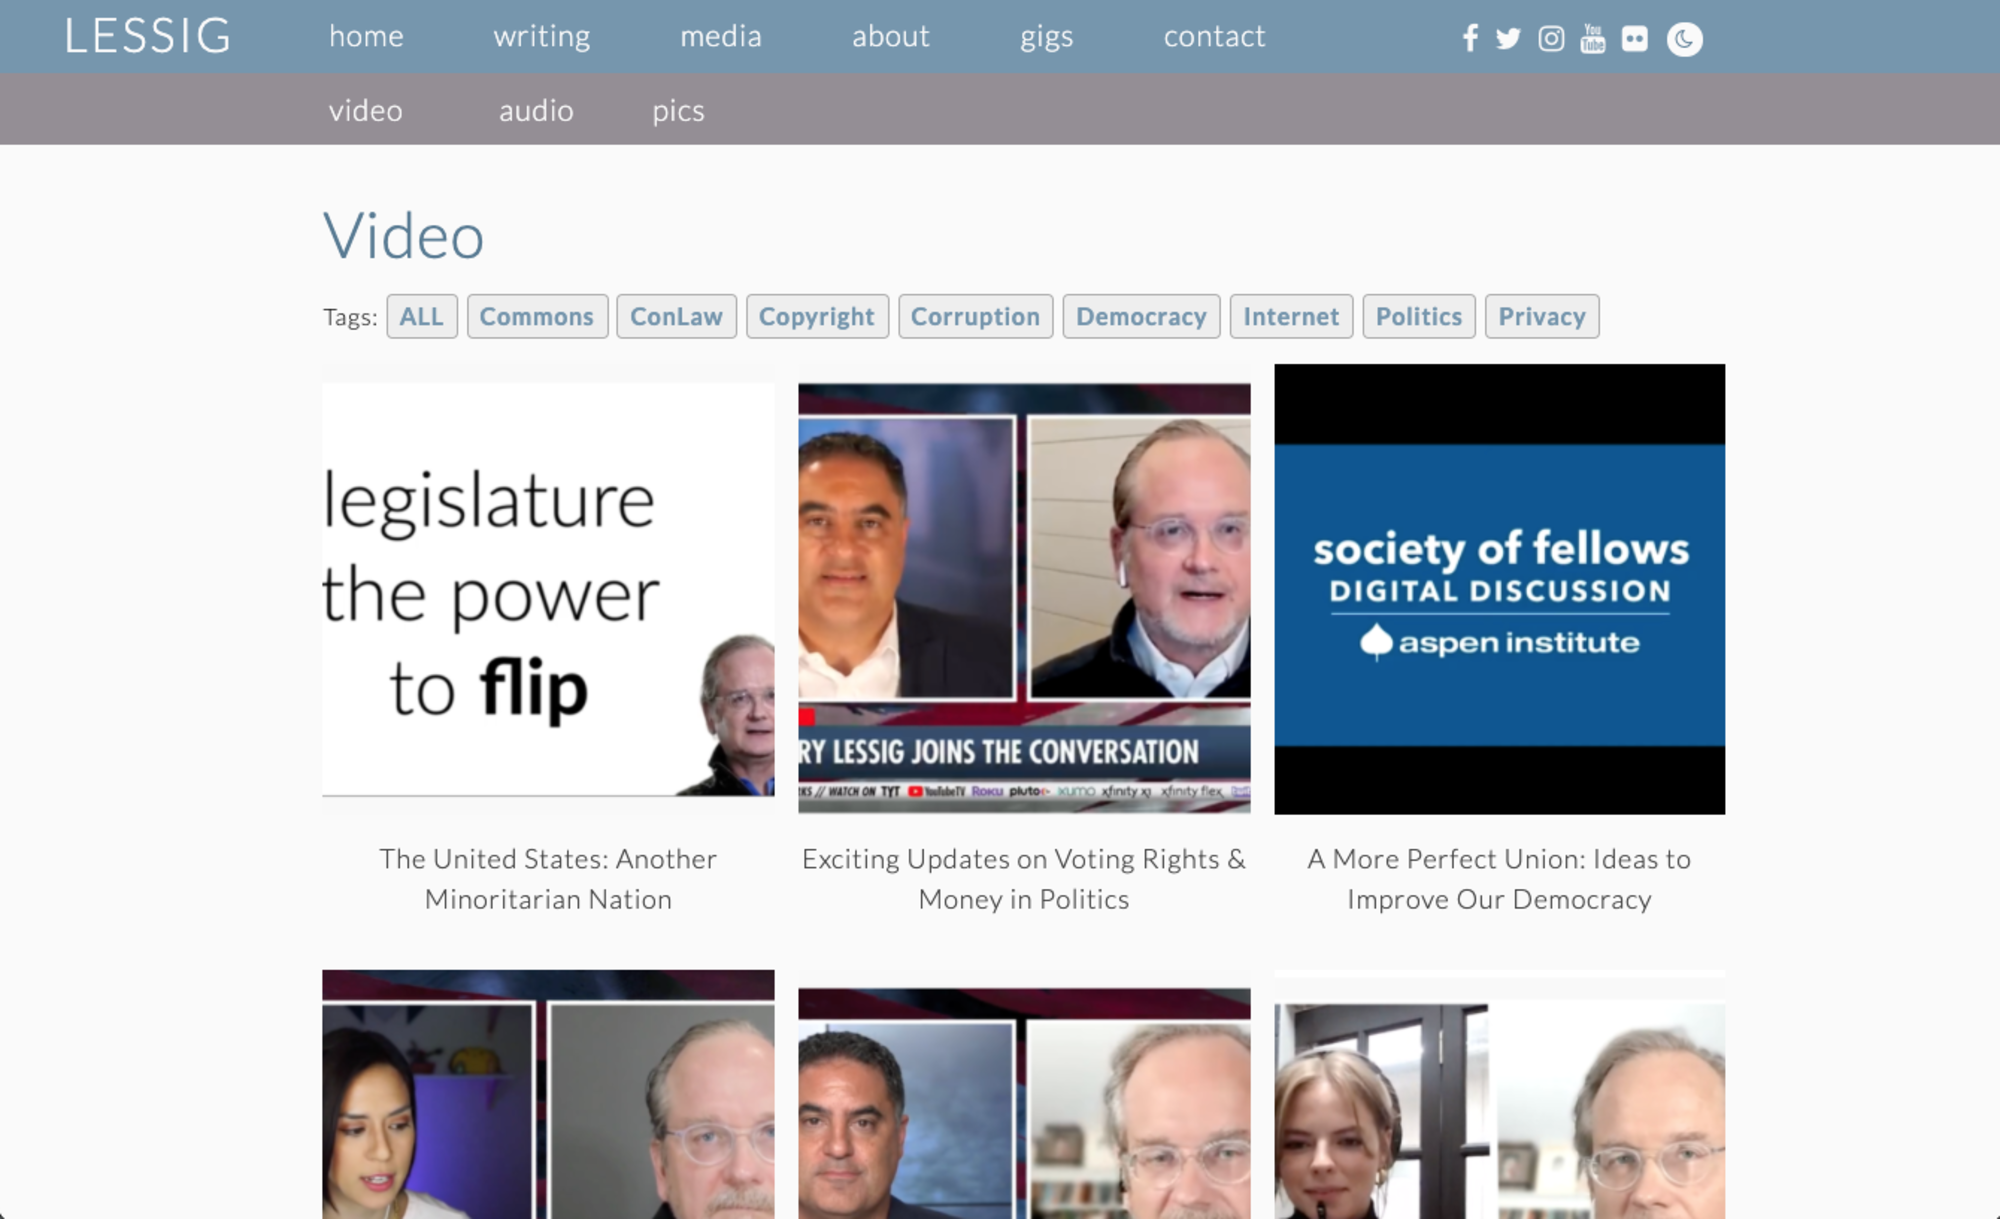 Lawrence Lessig media files on his website